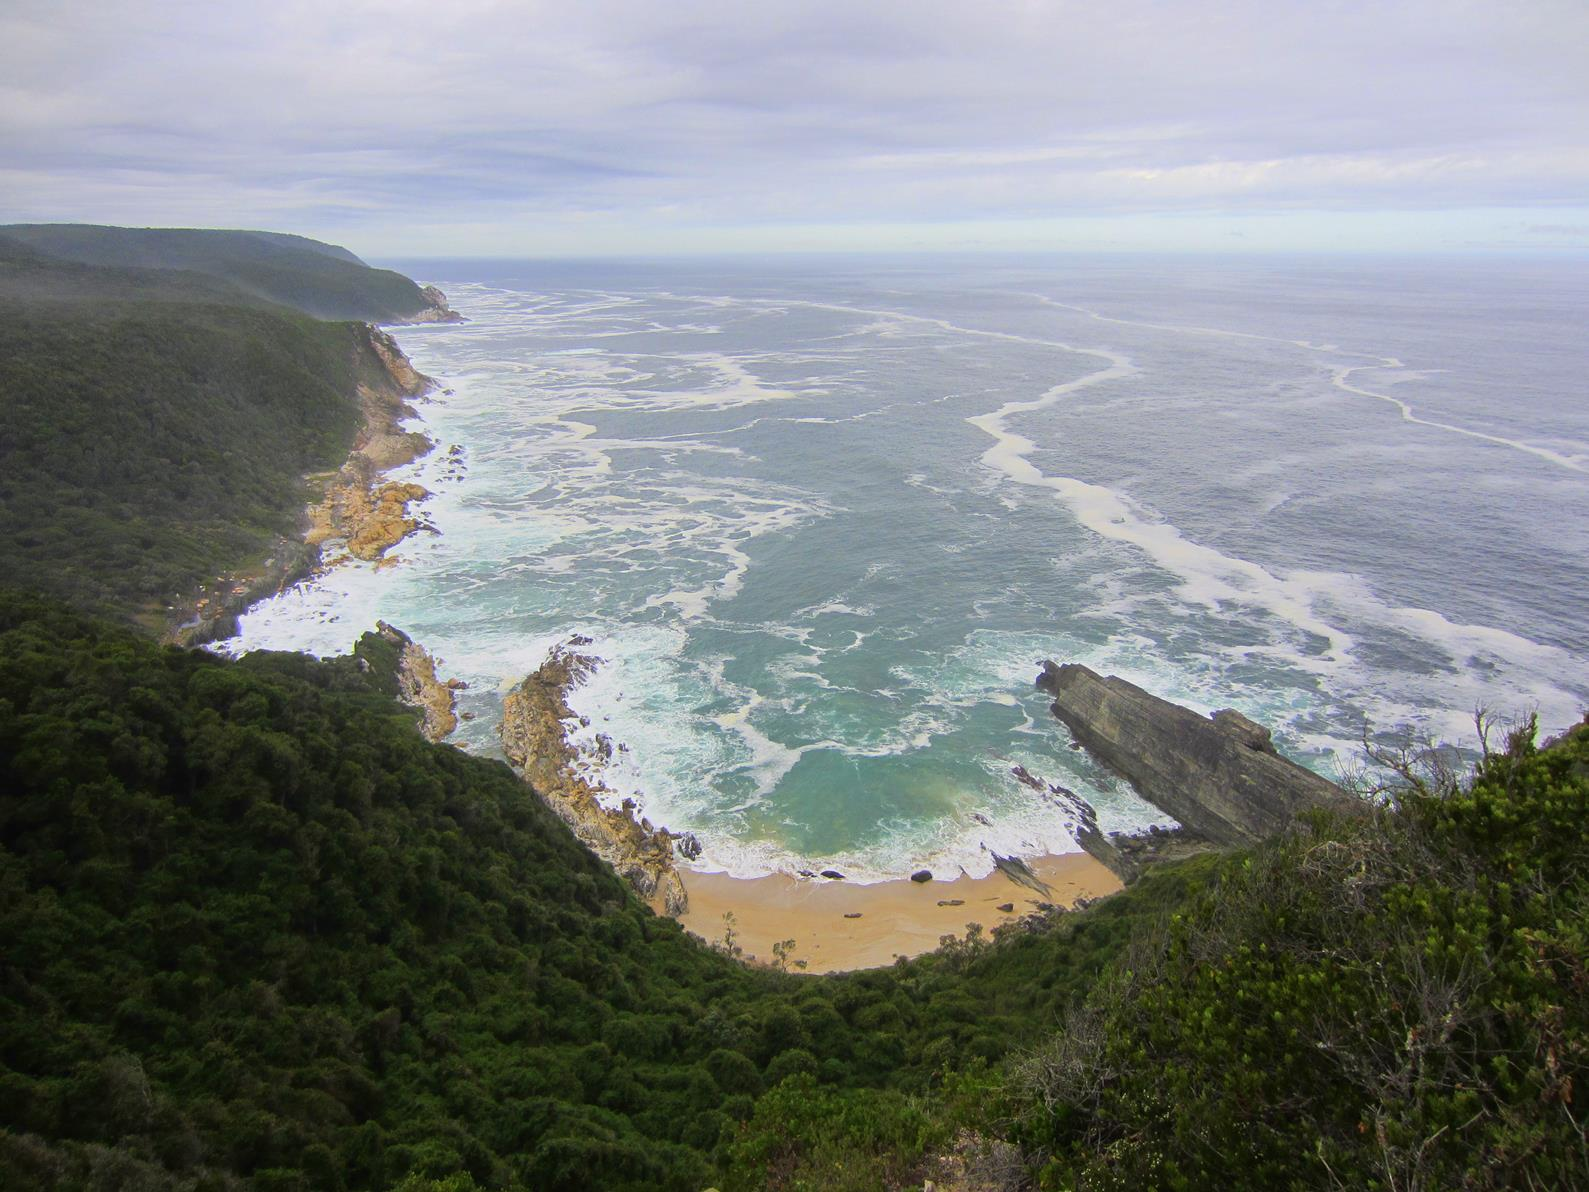 Bloubaai seen from the top.